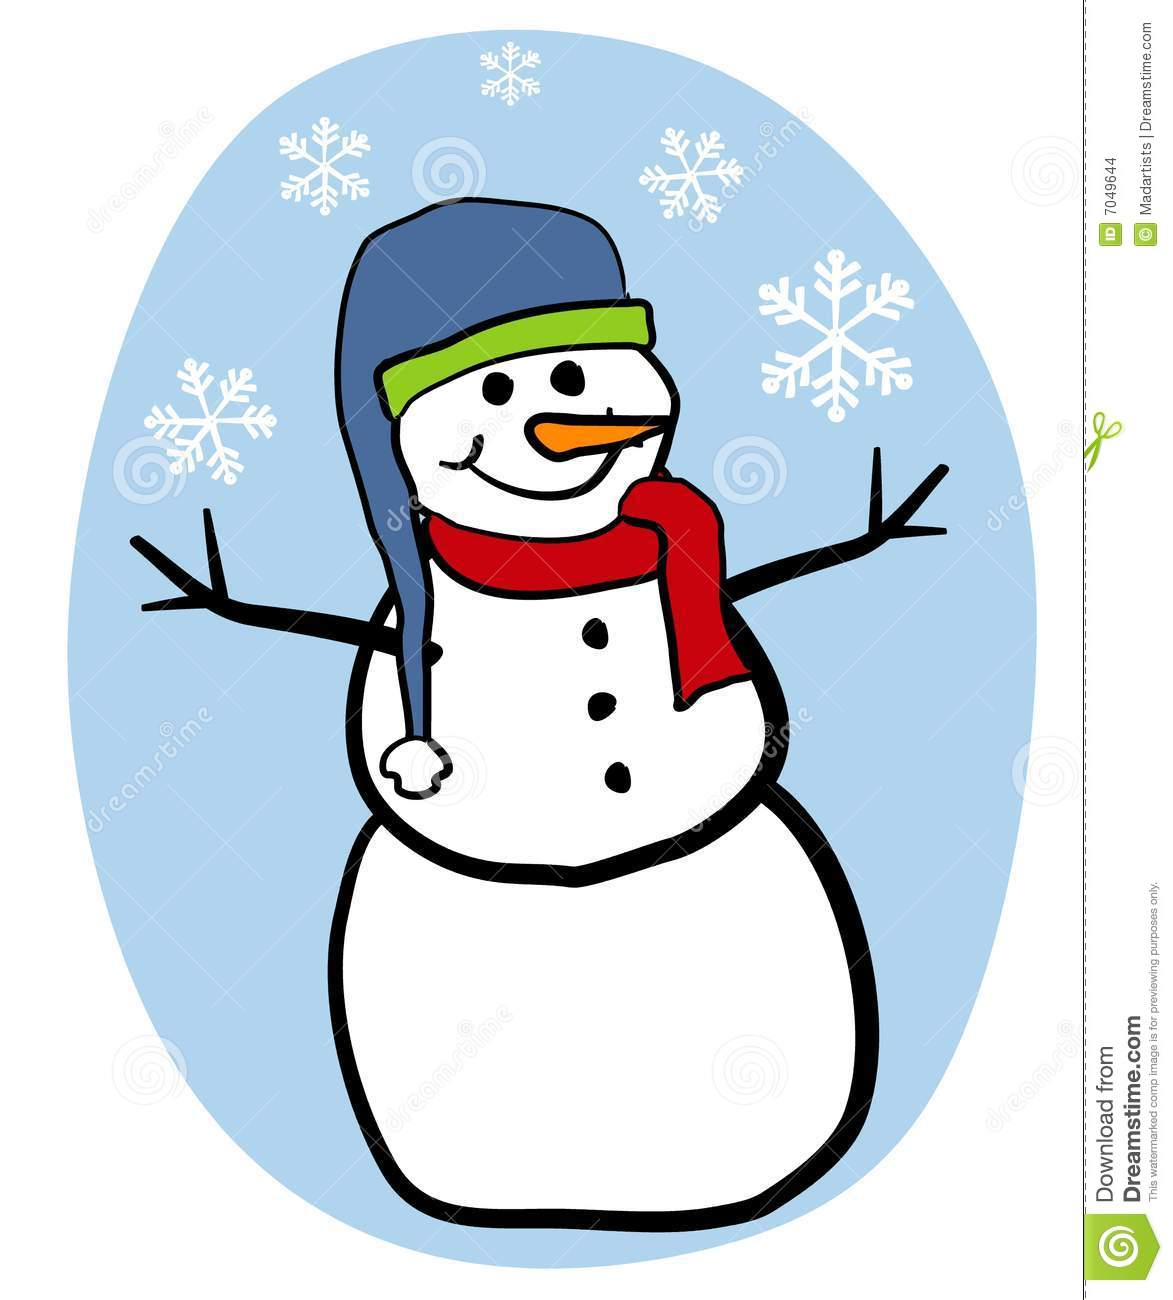 snowman clip art stock illustration illustration of cartoon 7049644 rh dreamstime com clipart of melting snowman clipart of snowman black and white